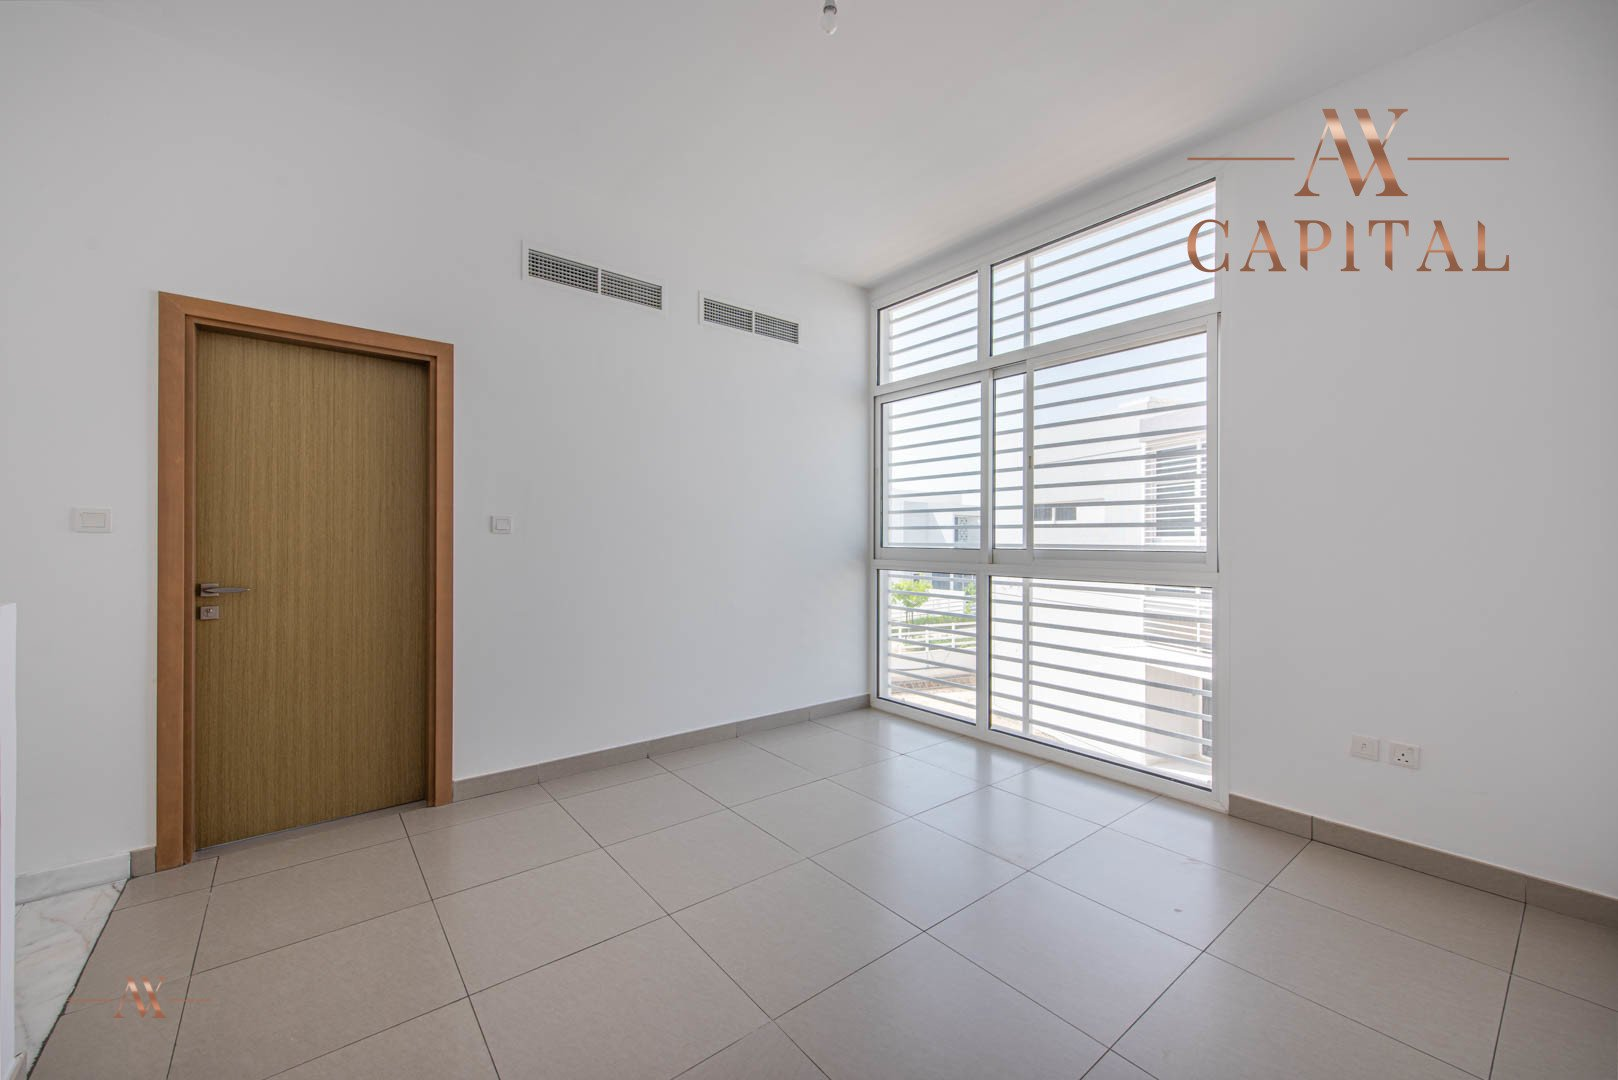 Townhouse for sale in Dubai, UAE, 3 bedrooms, 263.9 m2, No. 23637 – photo 8